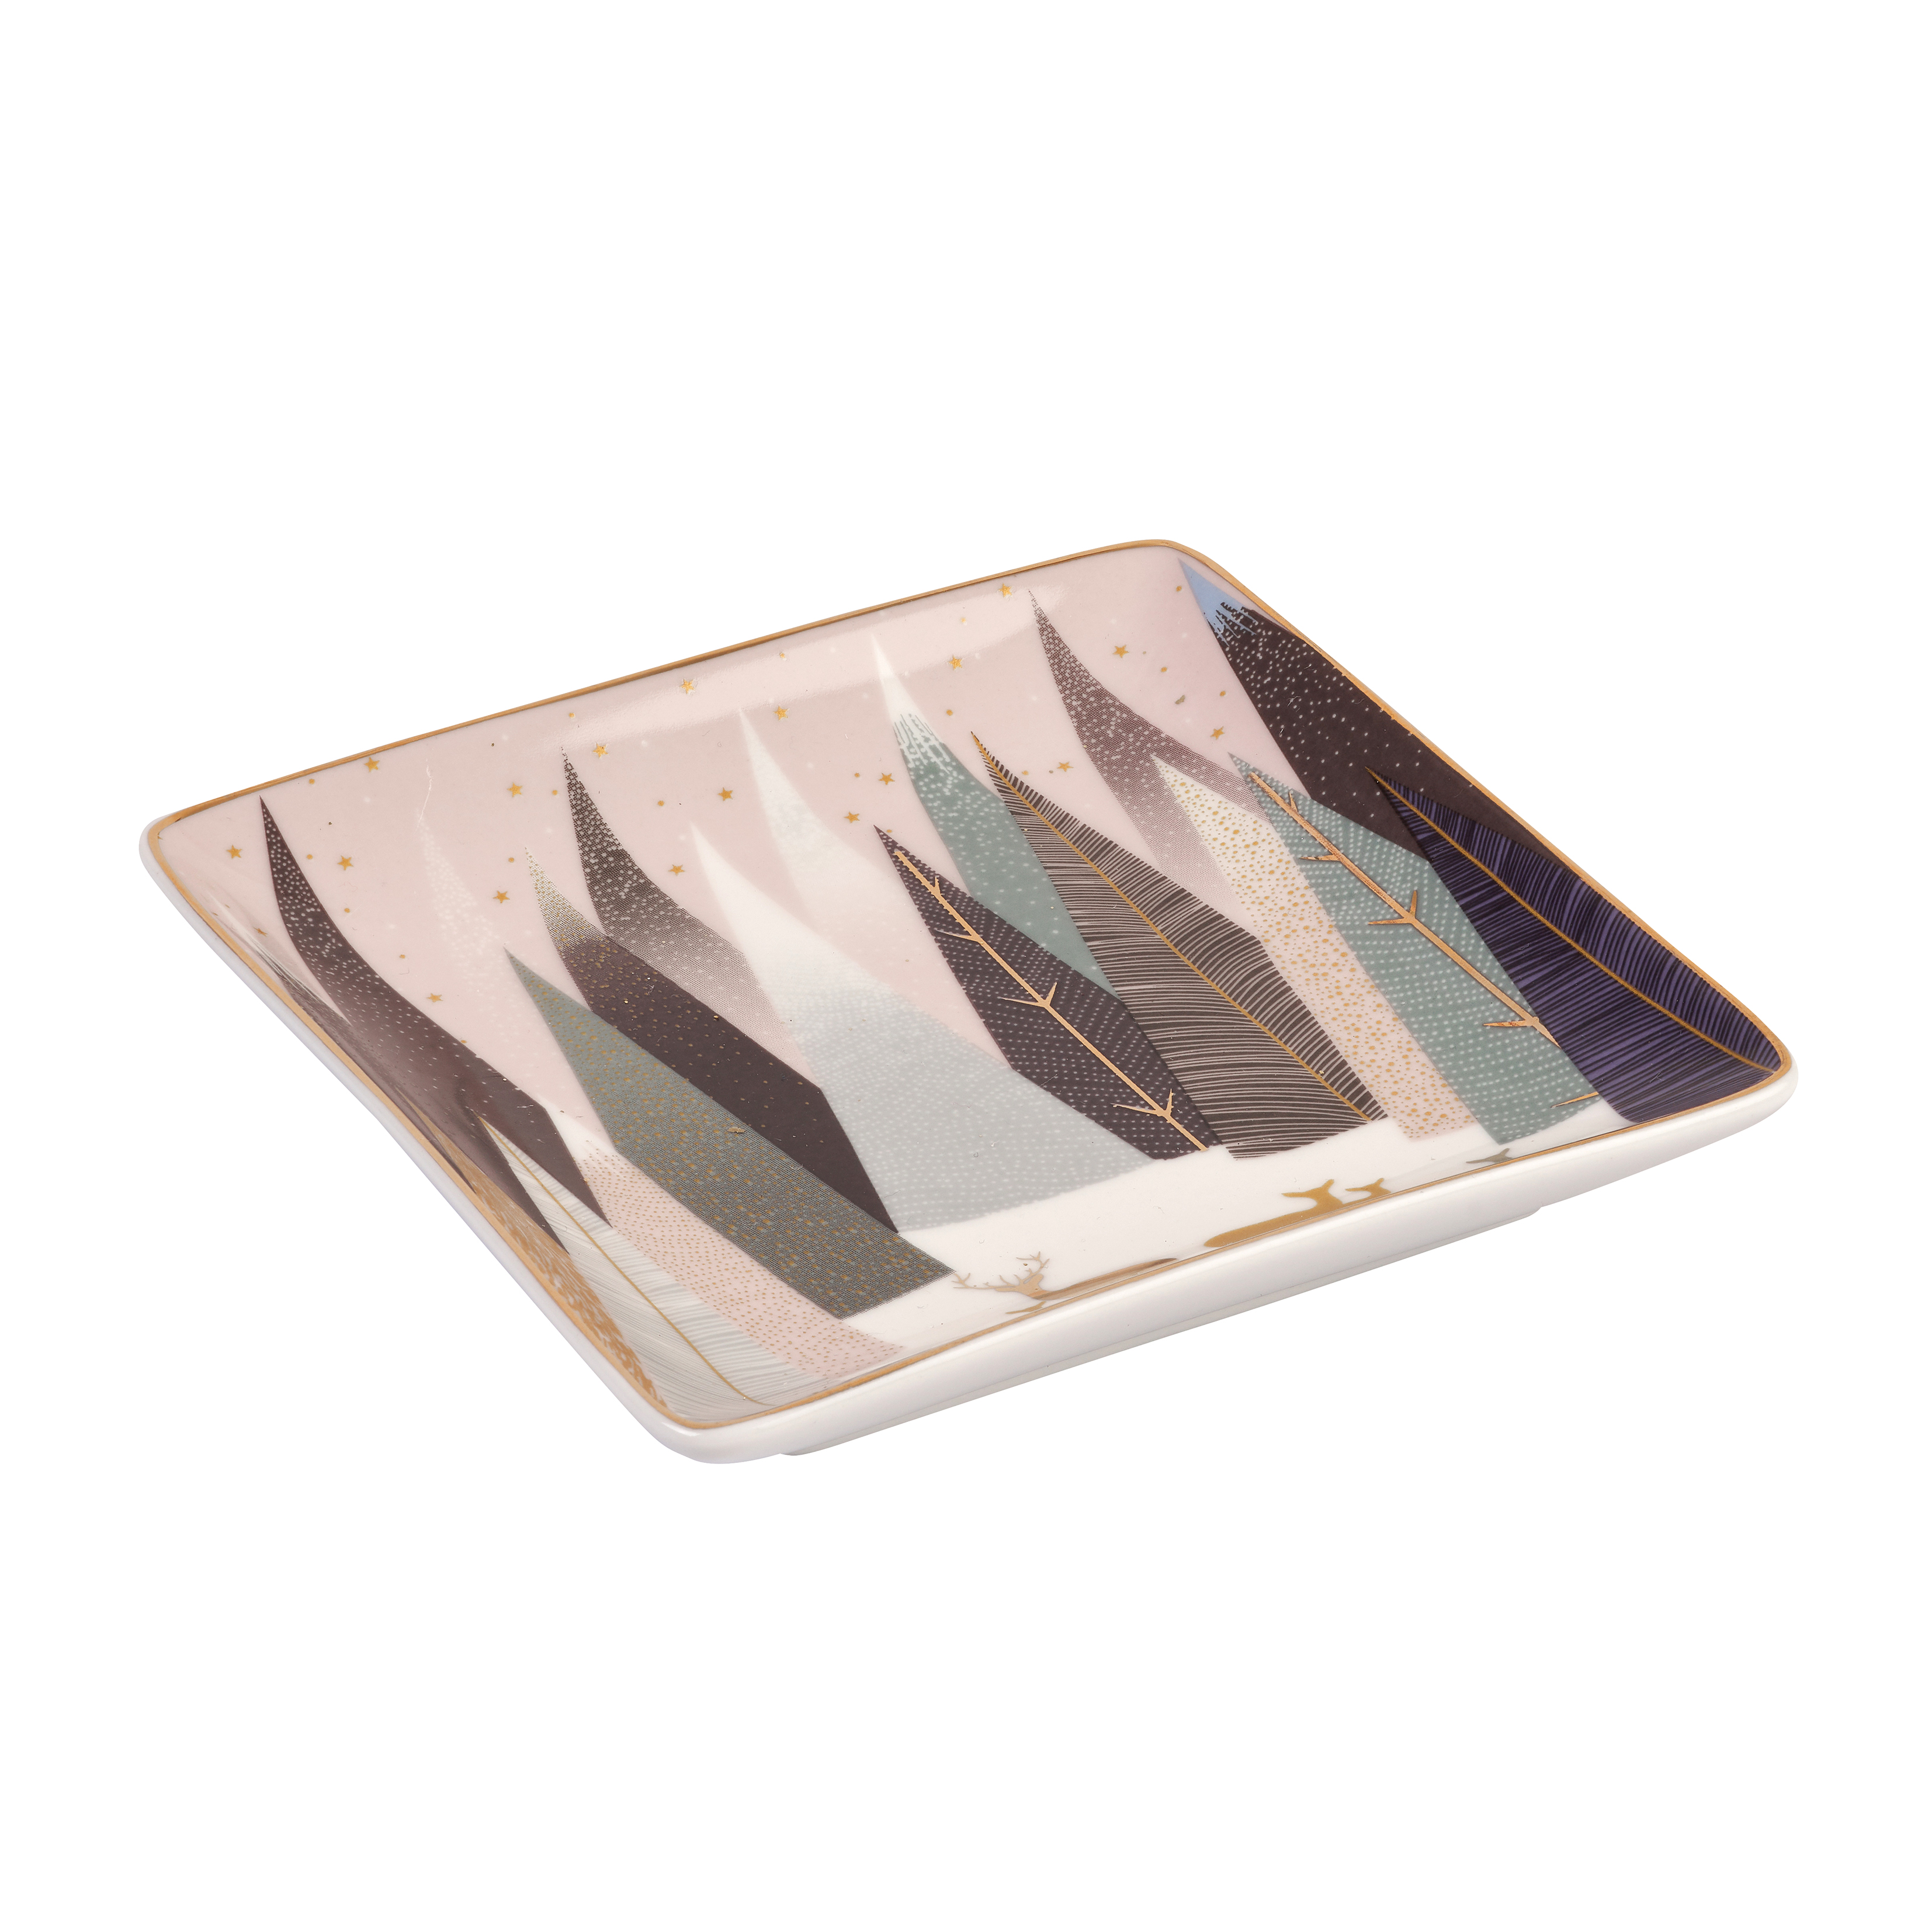 Sara Miller London for Portmeirion Frosted Pines Set of 3 Square Trays 4.5 Inch image number 2